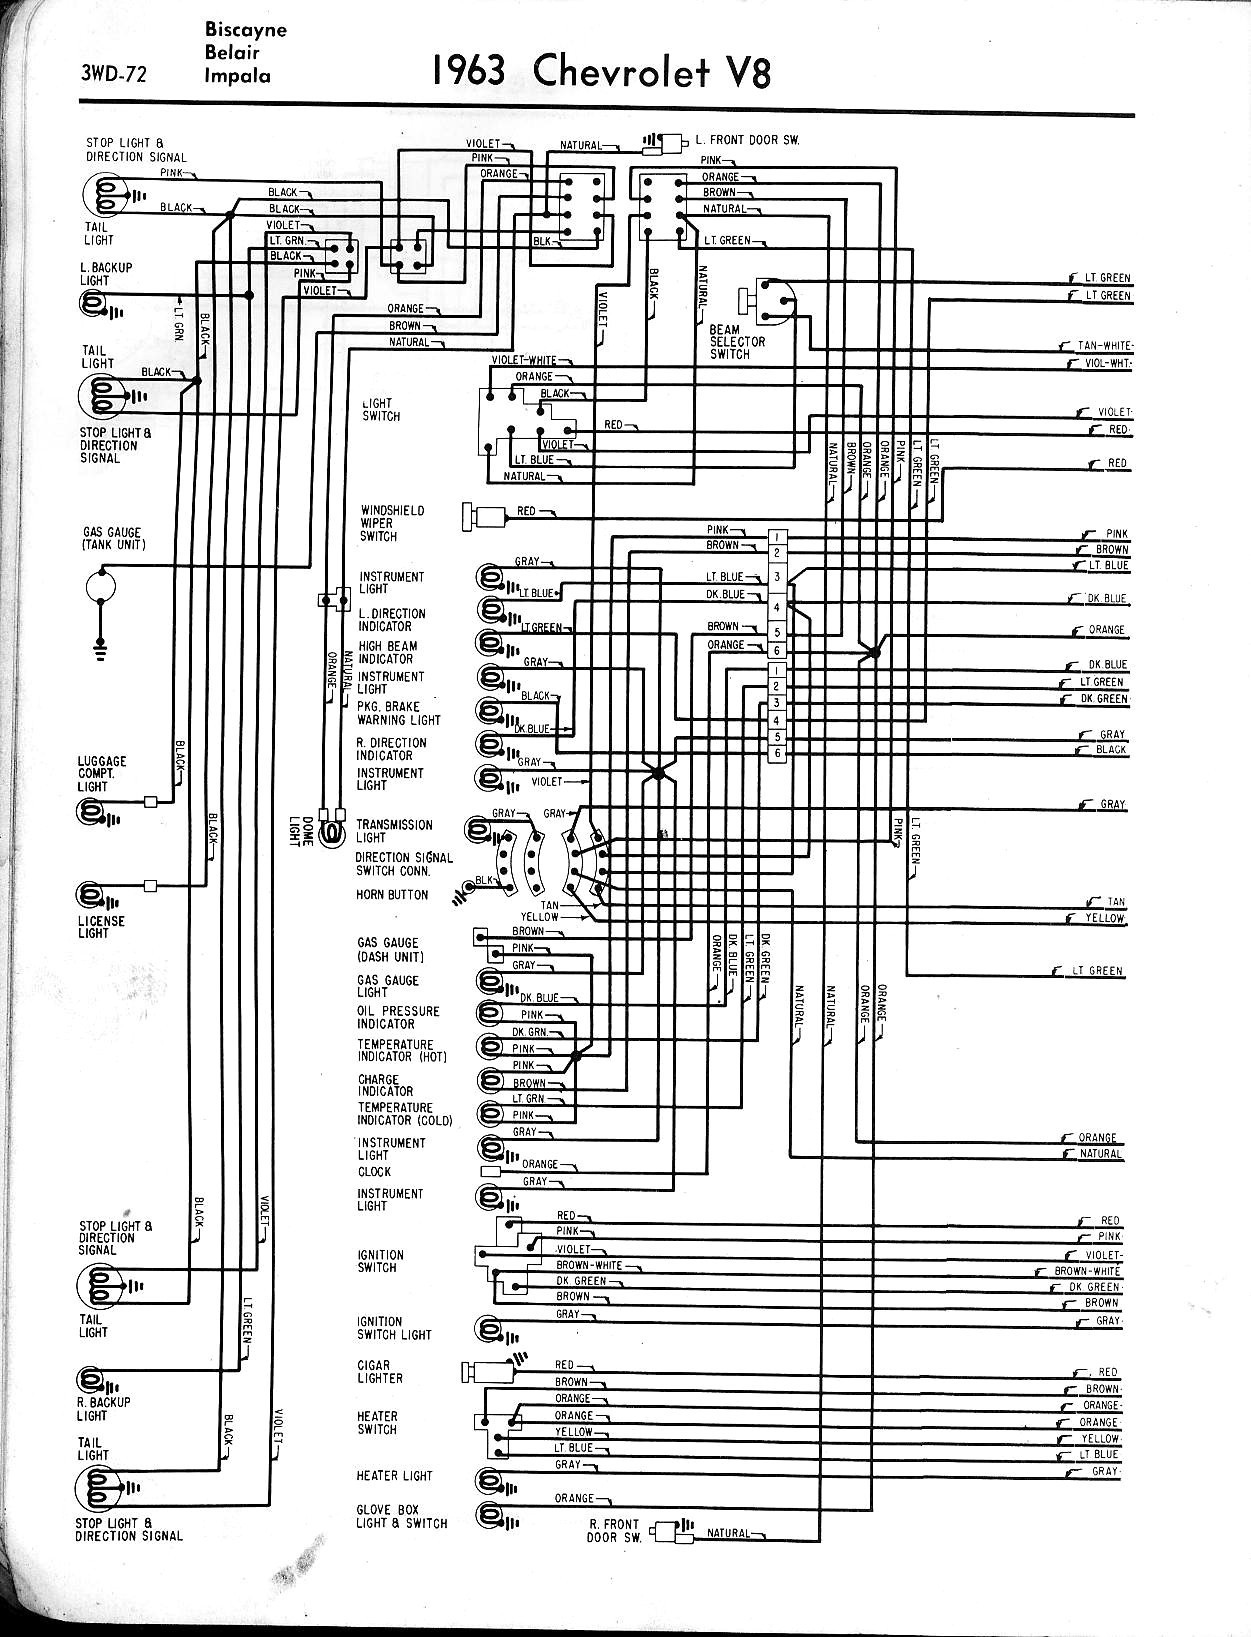 Light Wiring Diagram 78 Chevy Nova Electrical Schematics 1971 Rear Wire Harness 1963 Headlight Switch Center U2022 Ford Voltage Regulator